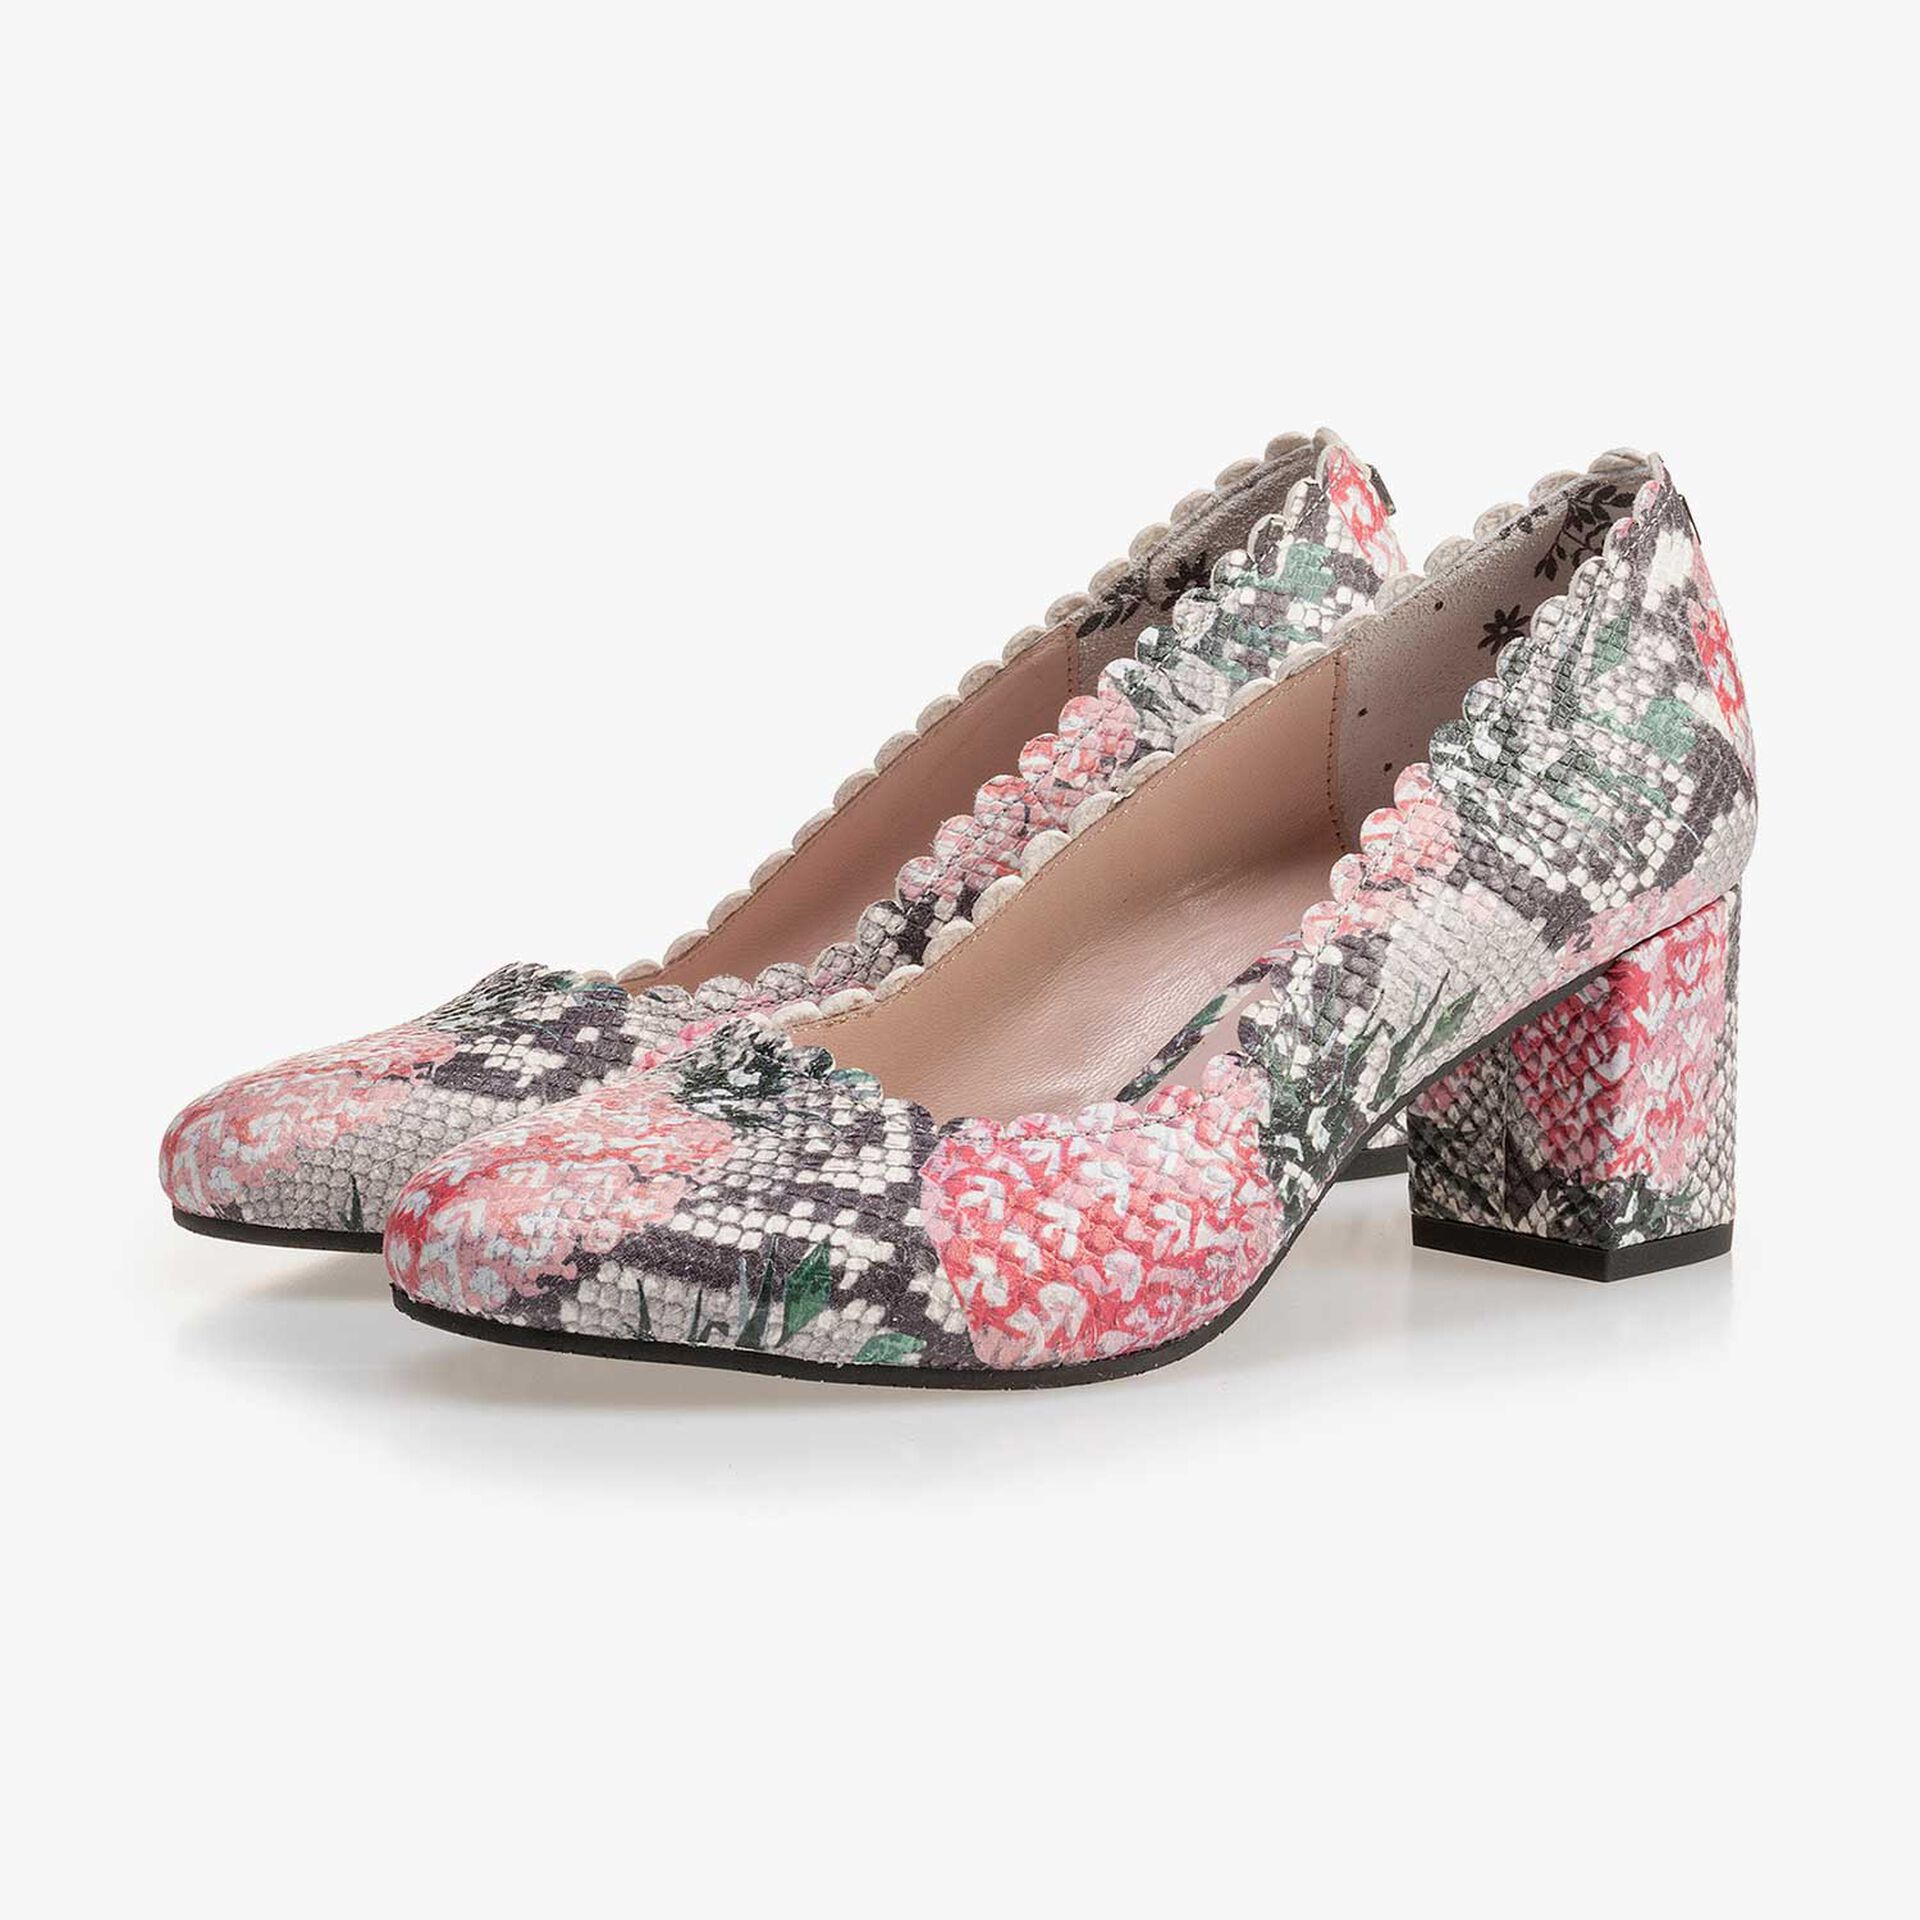 Multi-coloured leather pumps with printed motif